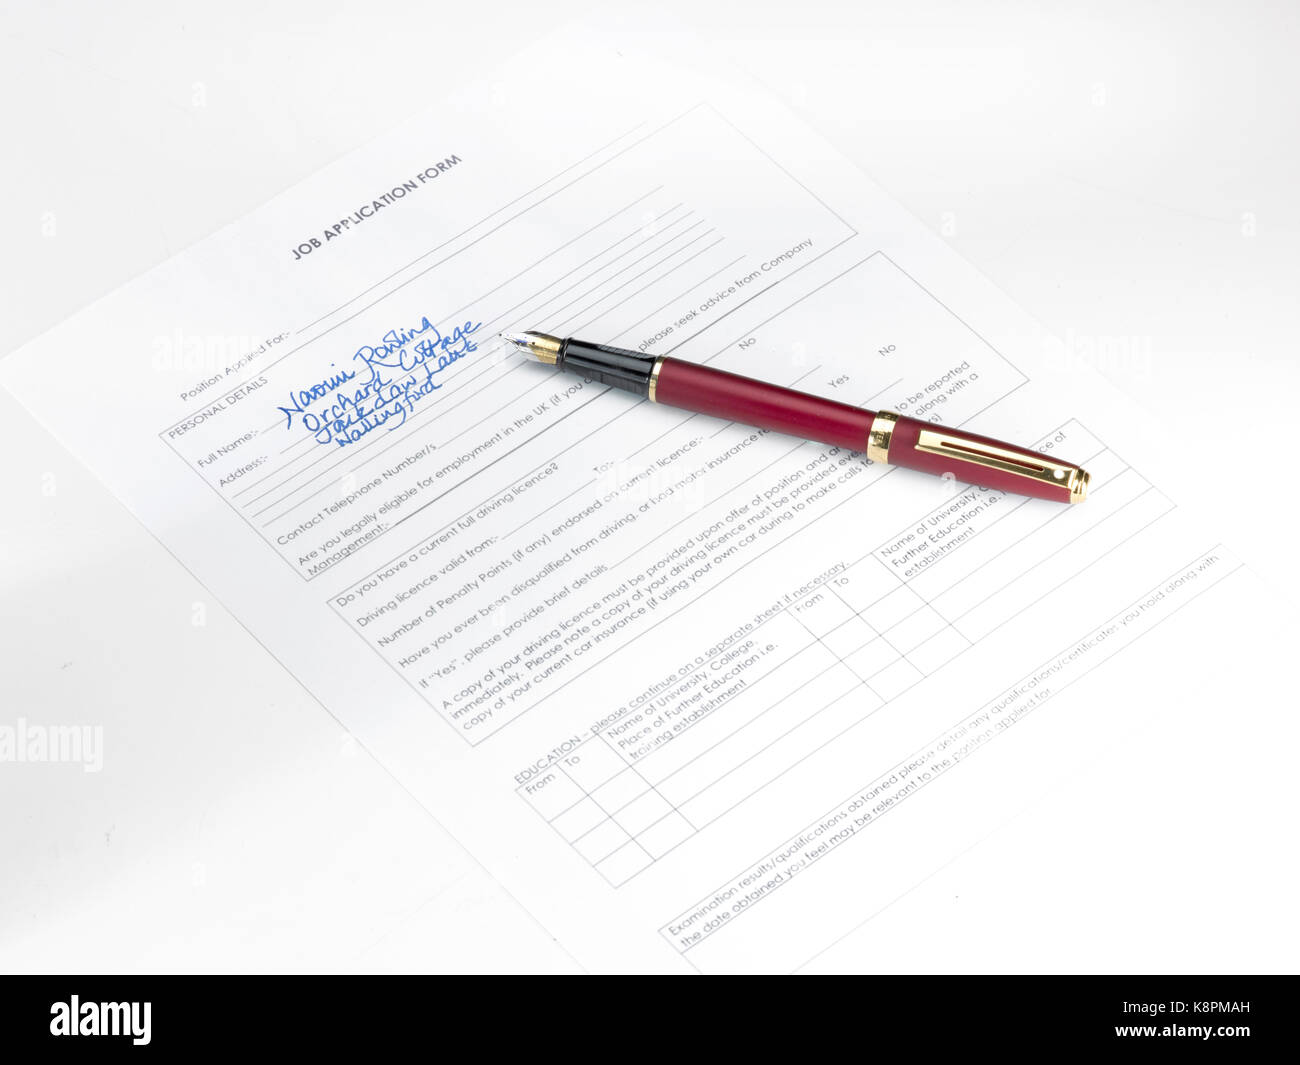 A Fountain Pen With Partially Filled Out Job Application Form Stock